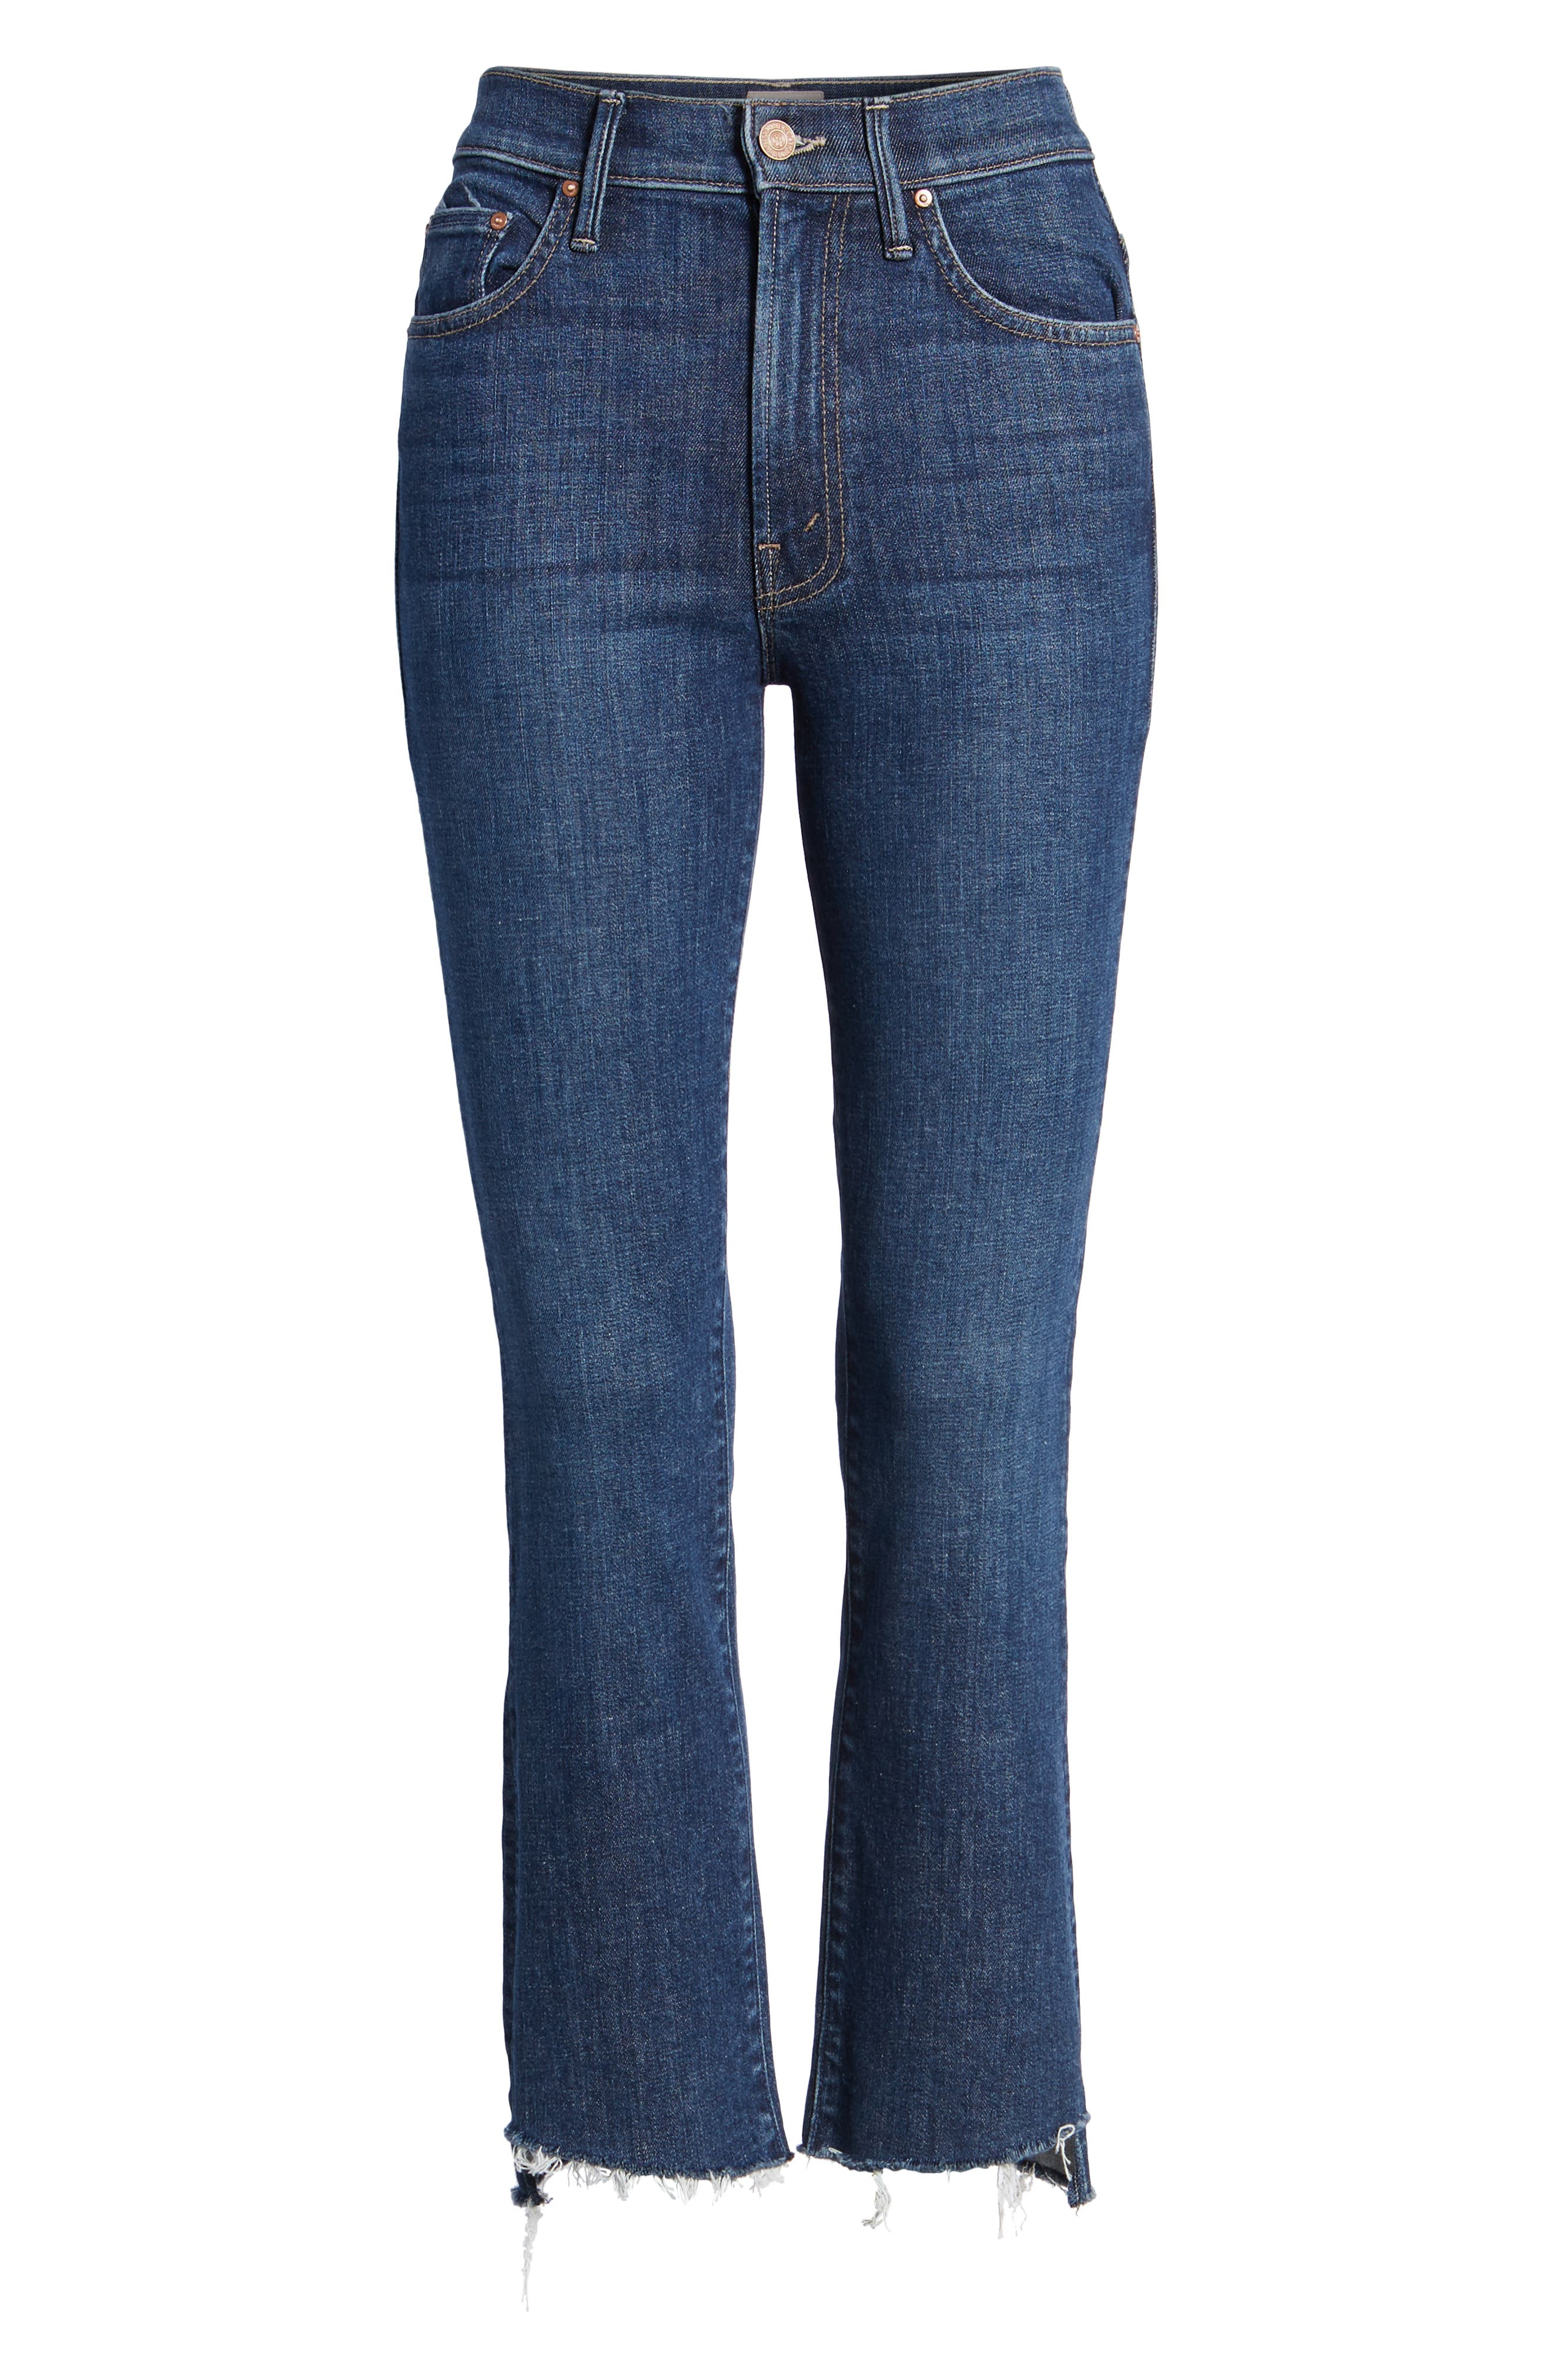 'The Insider' Crop Step Fray Jeans,                             Alternate thumbnail 6, color,                             Crushing It